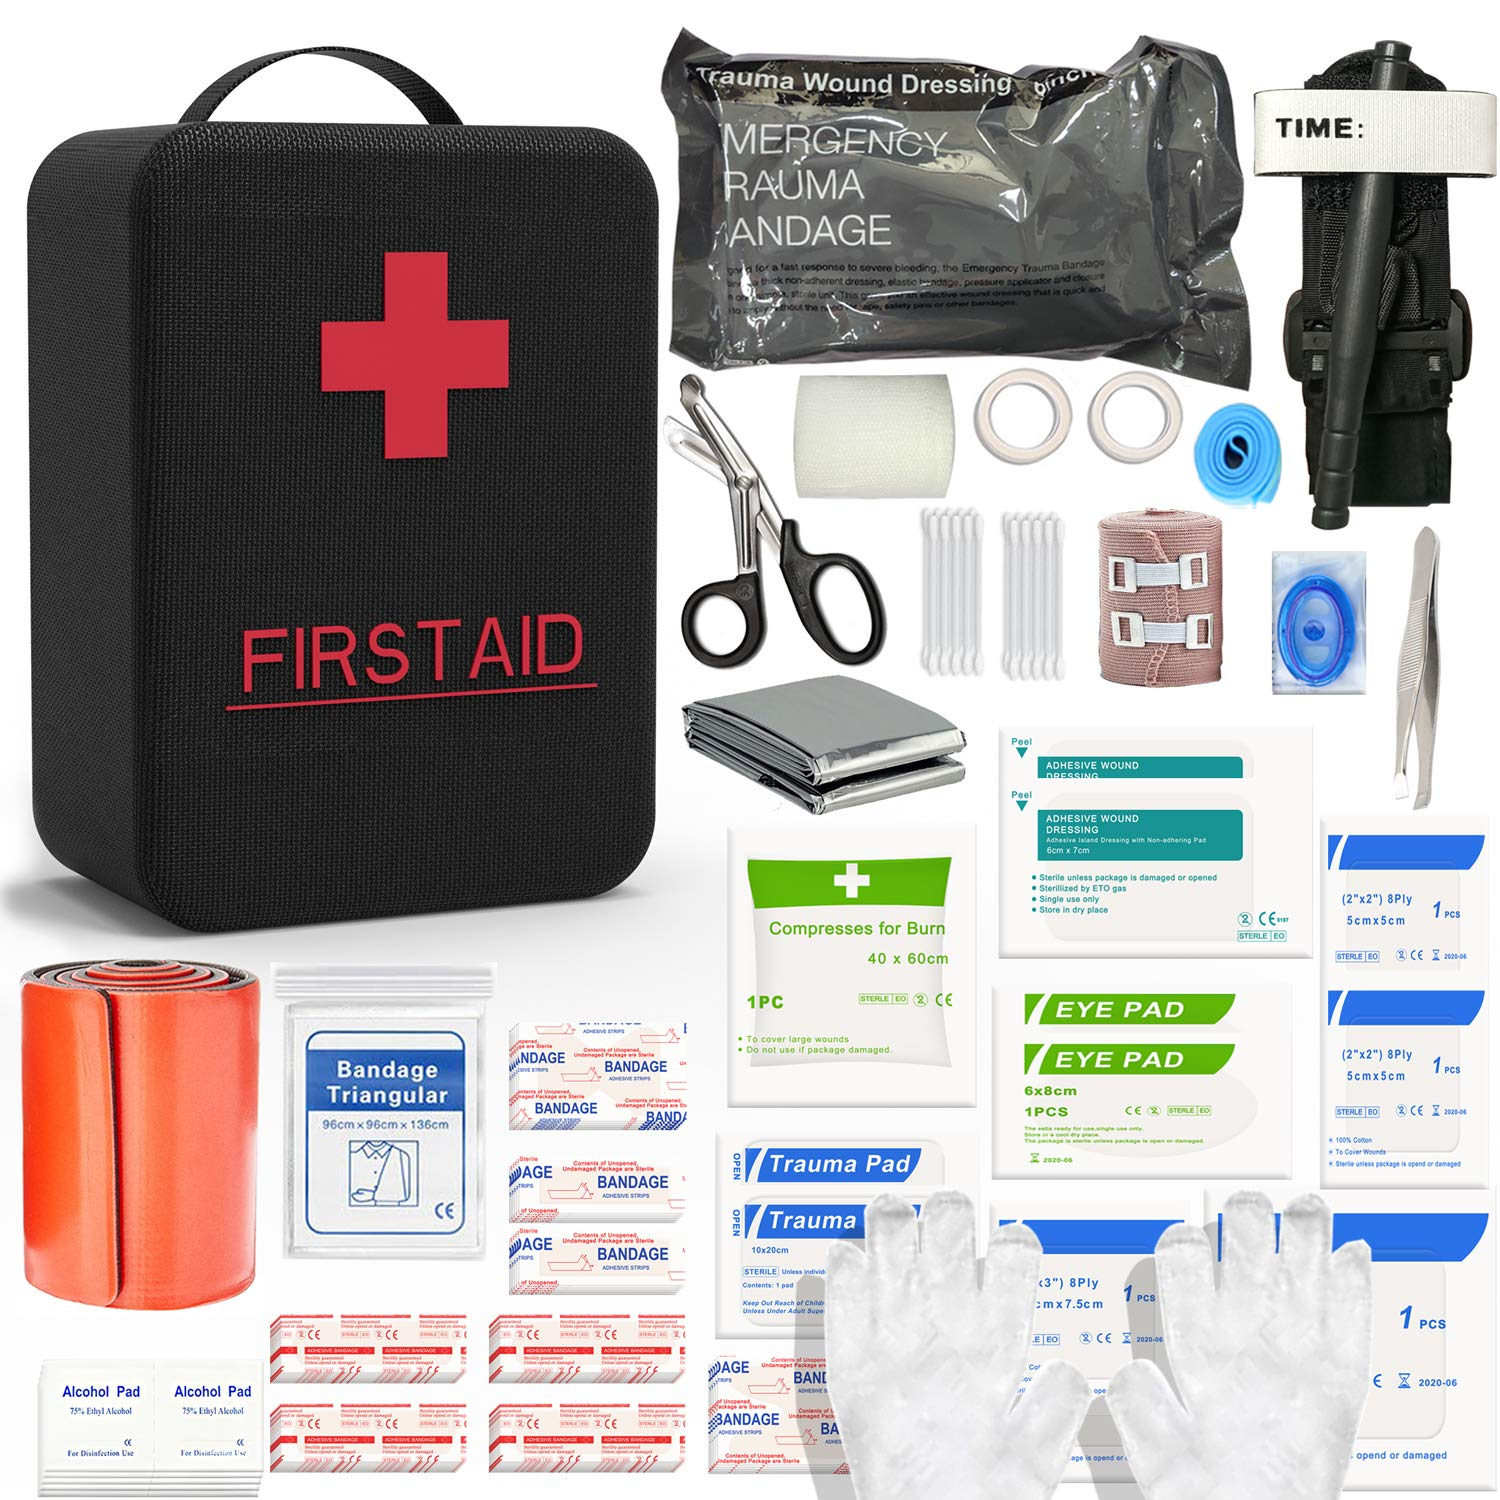 SHBC First Aid Survival Kit 26 Items Outdoor Gear Emergency Kits with 36 Inch Splint, CAT Tourniquet,Israeli Bandage for Camping Boat Hunting Hiking Adventures Sports Car Wilderness and Earthquake by SHBC